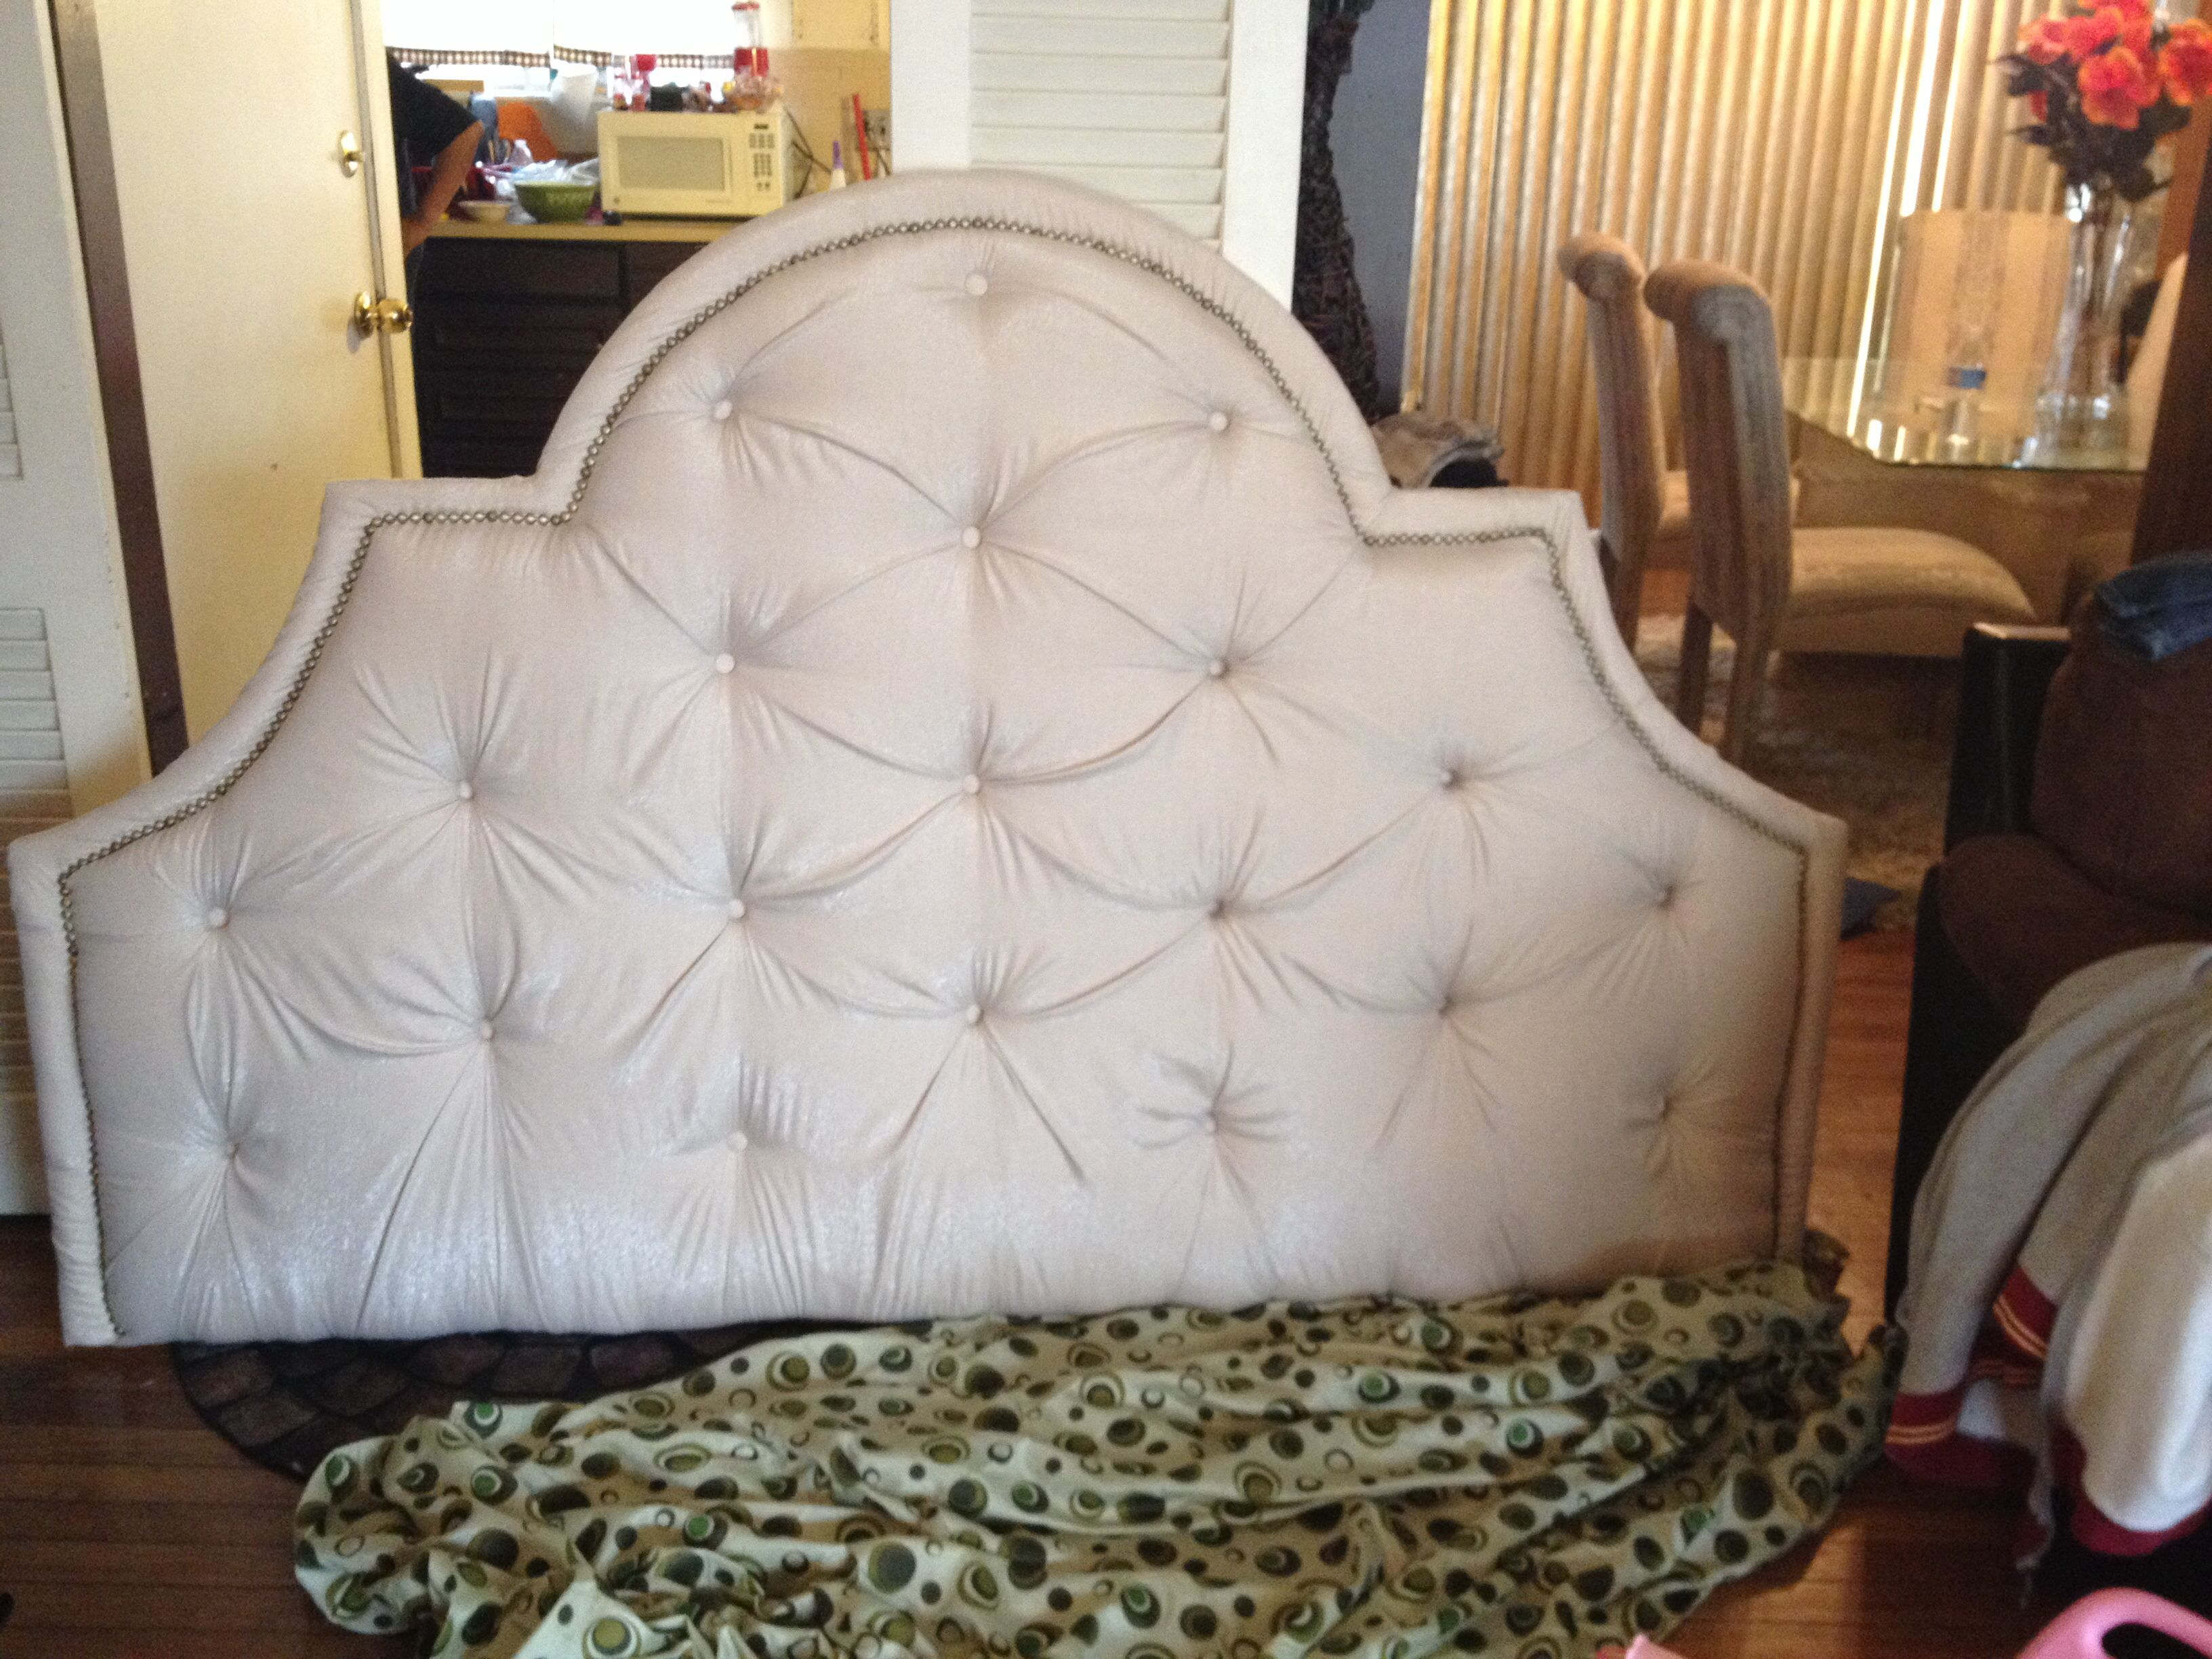 window headboard for ideas bed double black bedroom small spaces beside upholstered corner slipcovered